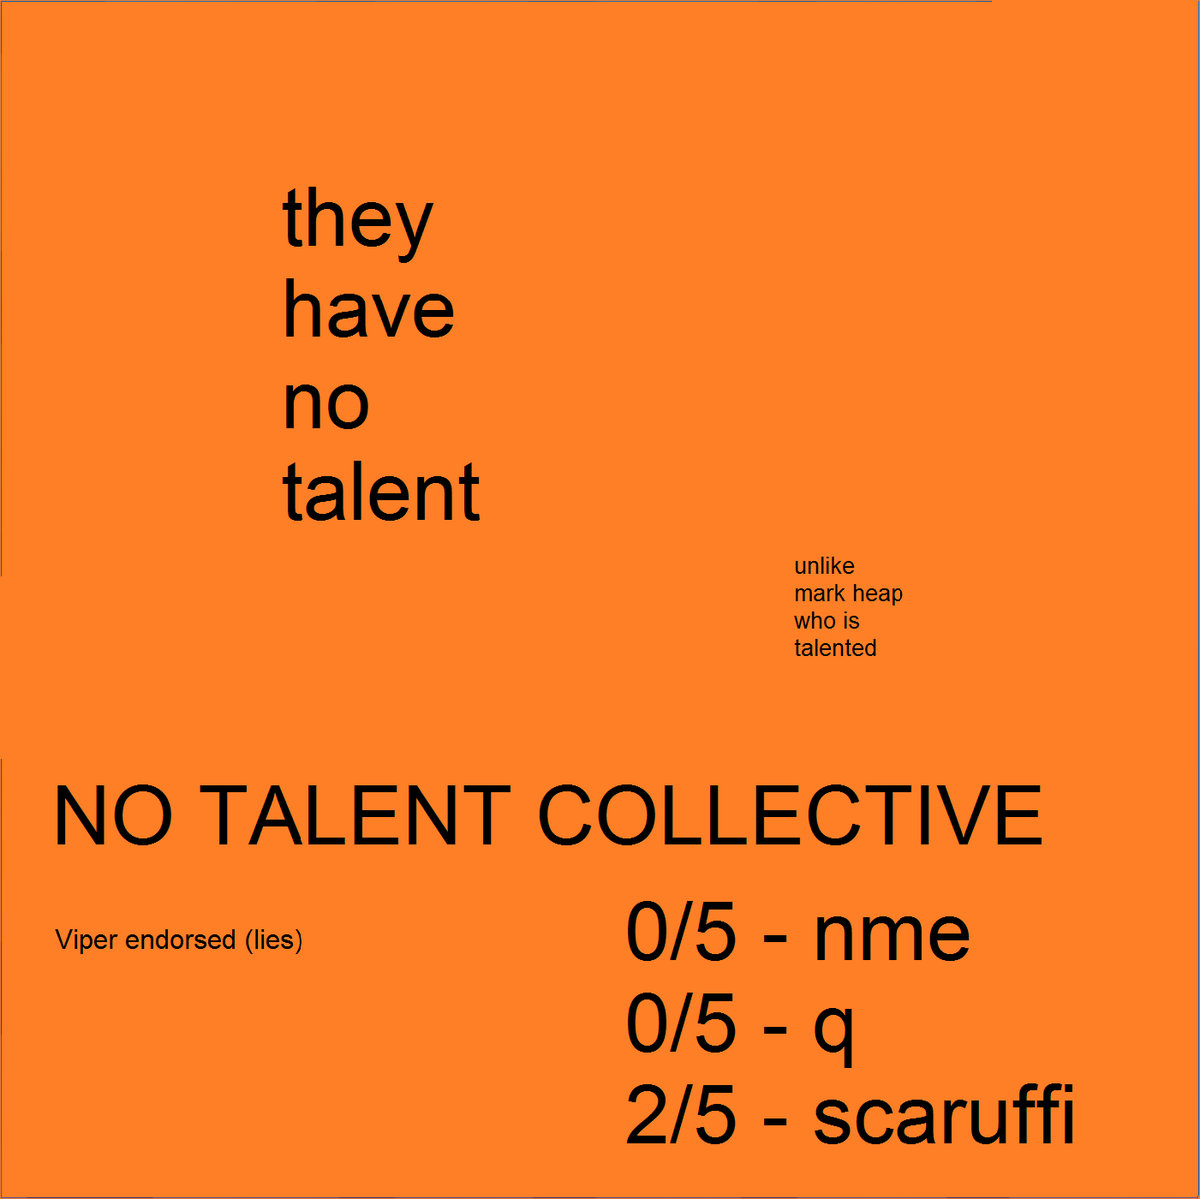 ell is back i ran out of creative song names no talent collective umbra records no talent collective bandcamp